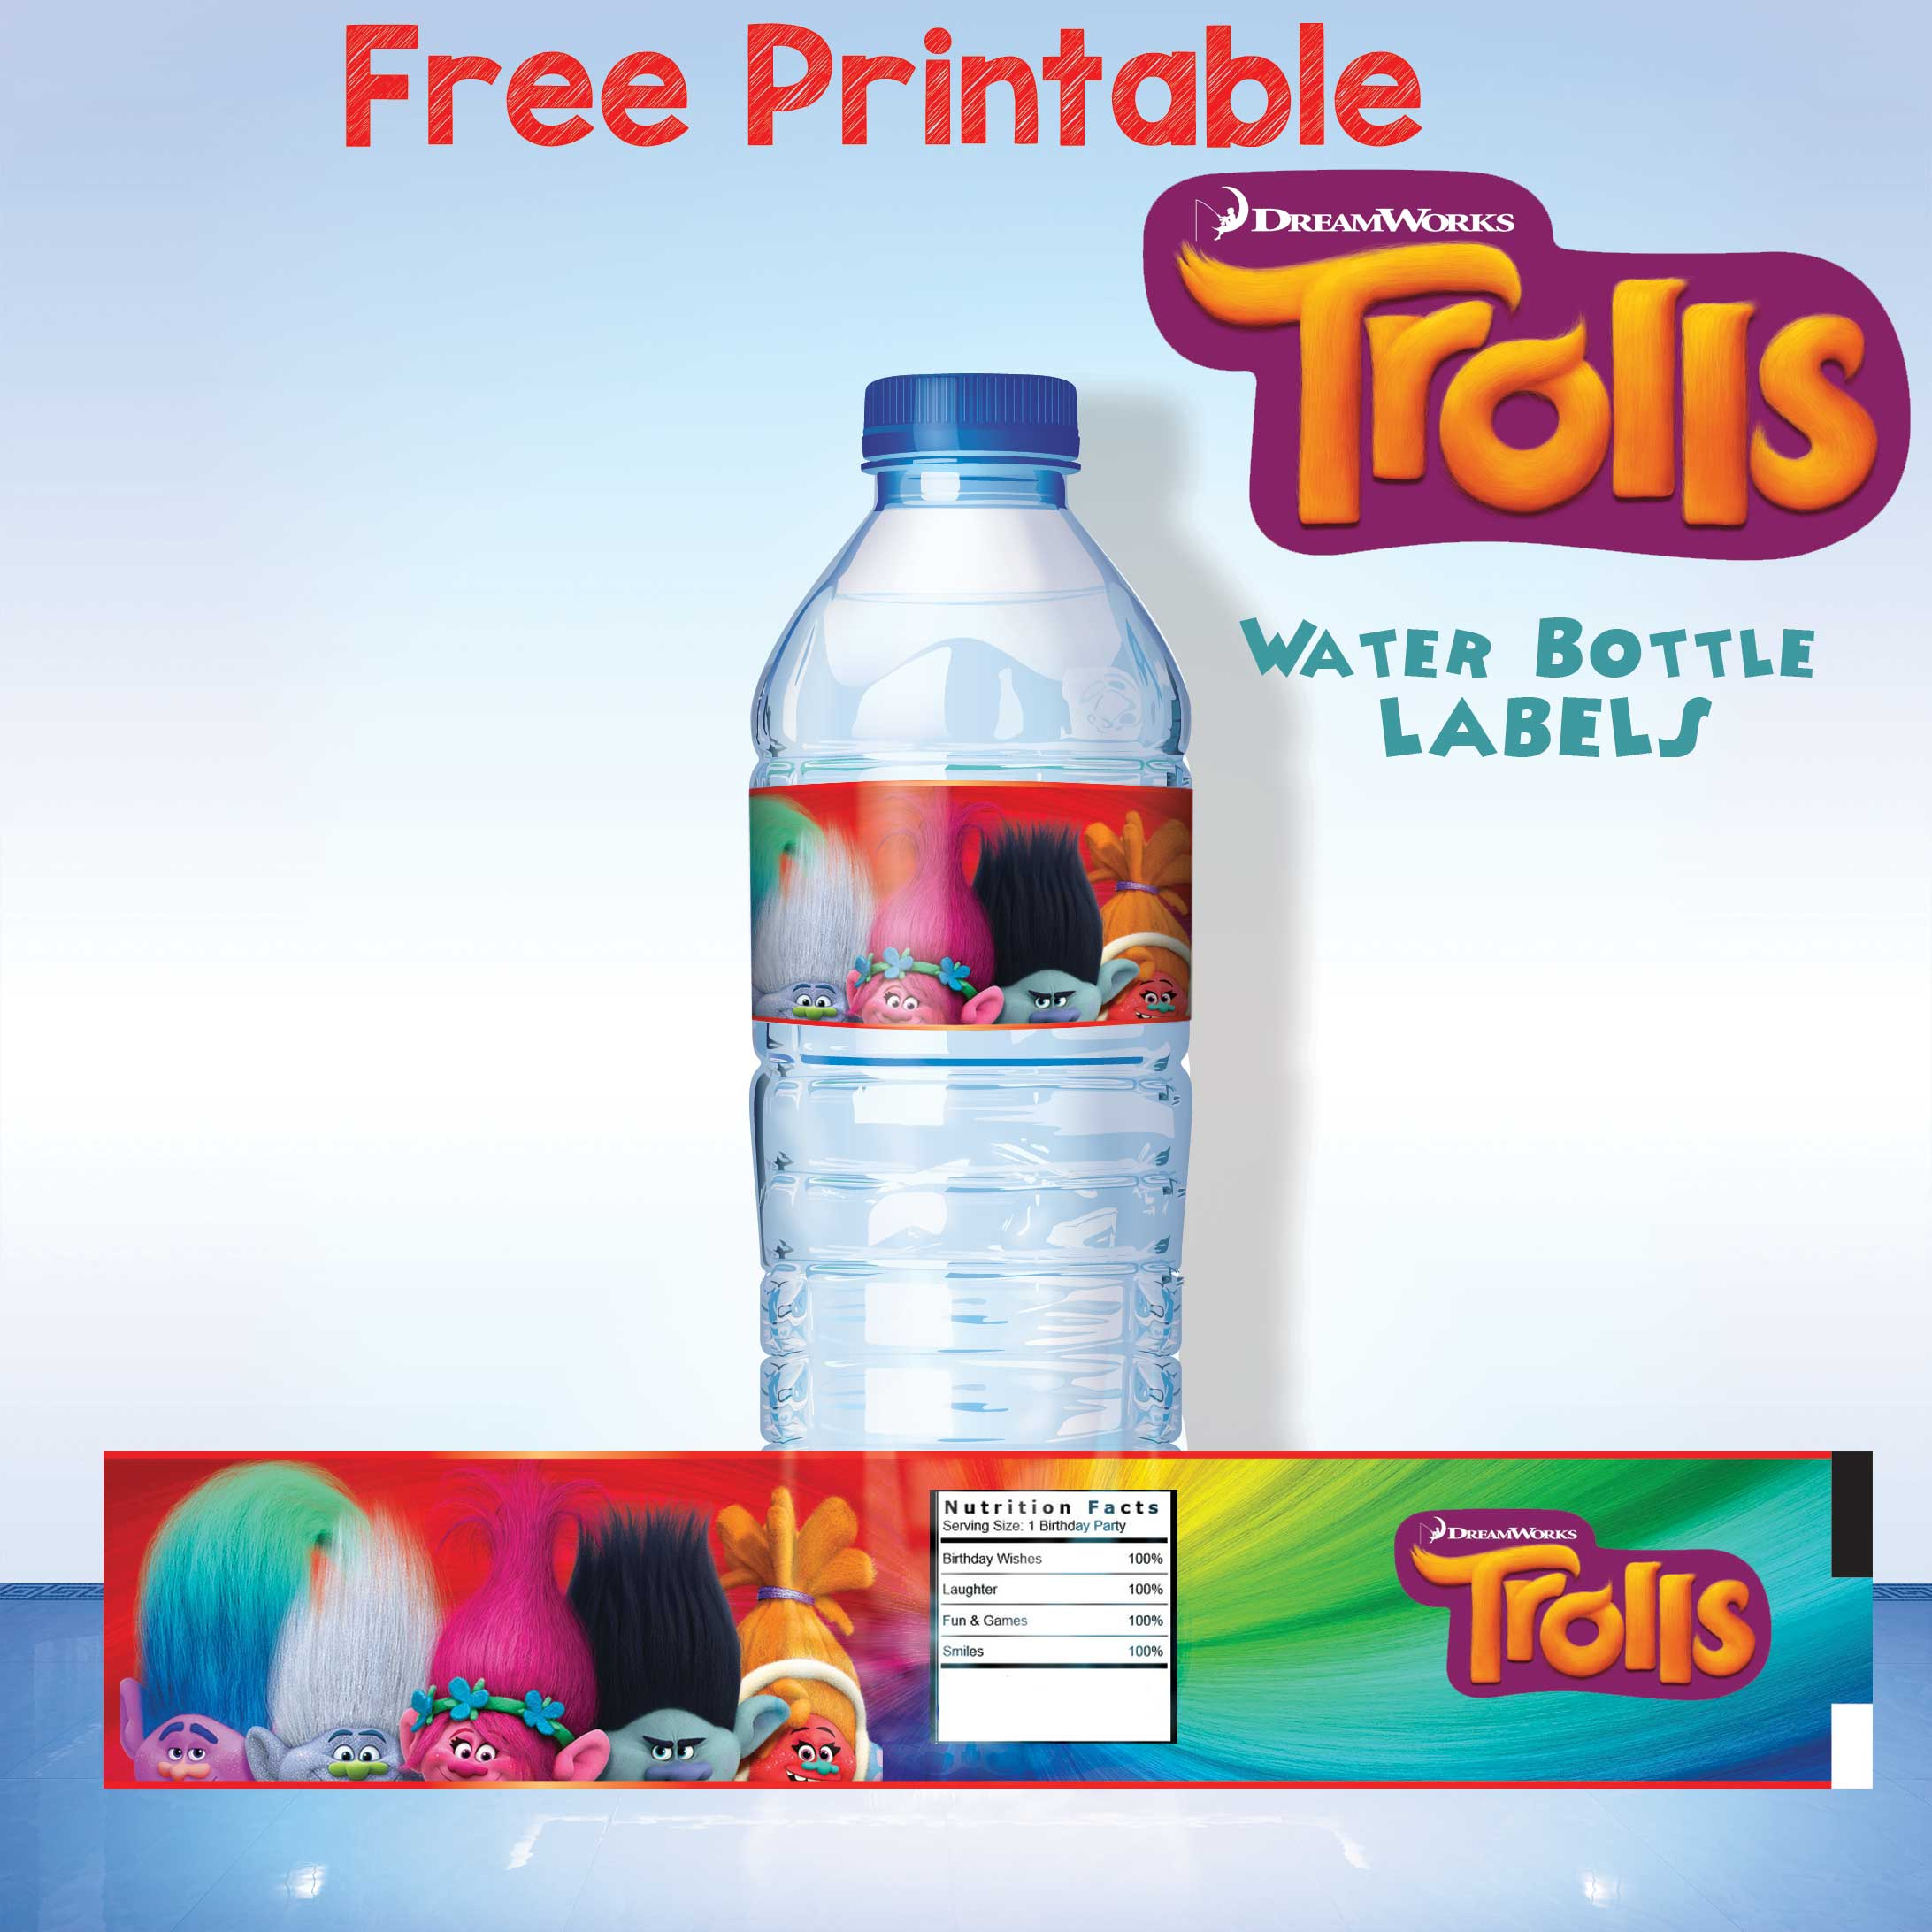 Universal image for free printable water bottle labels